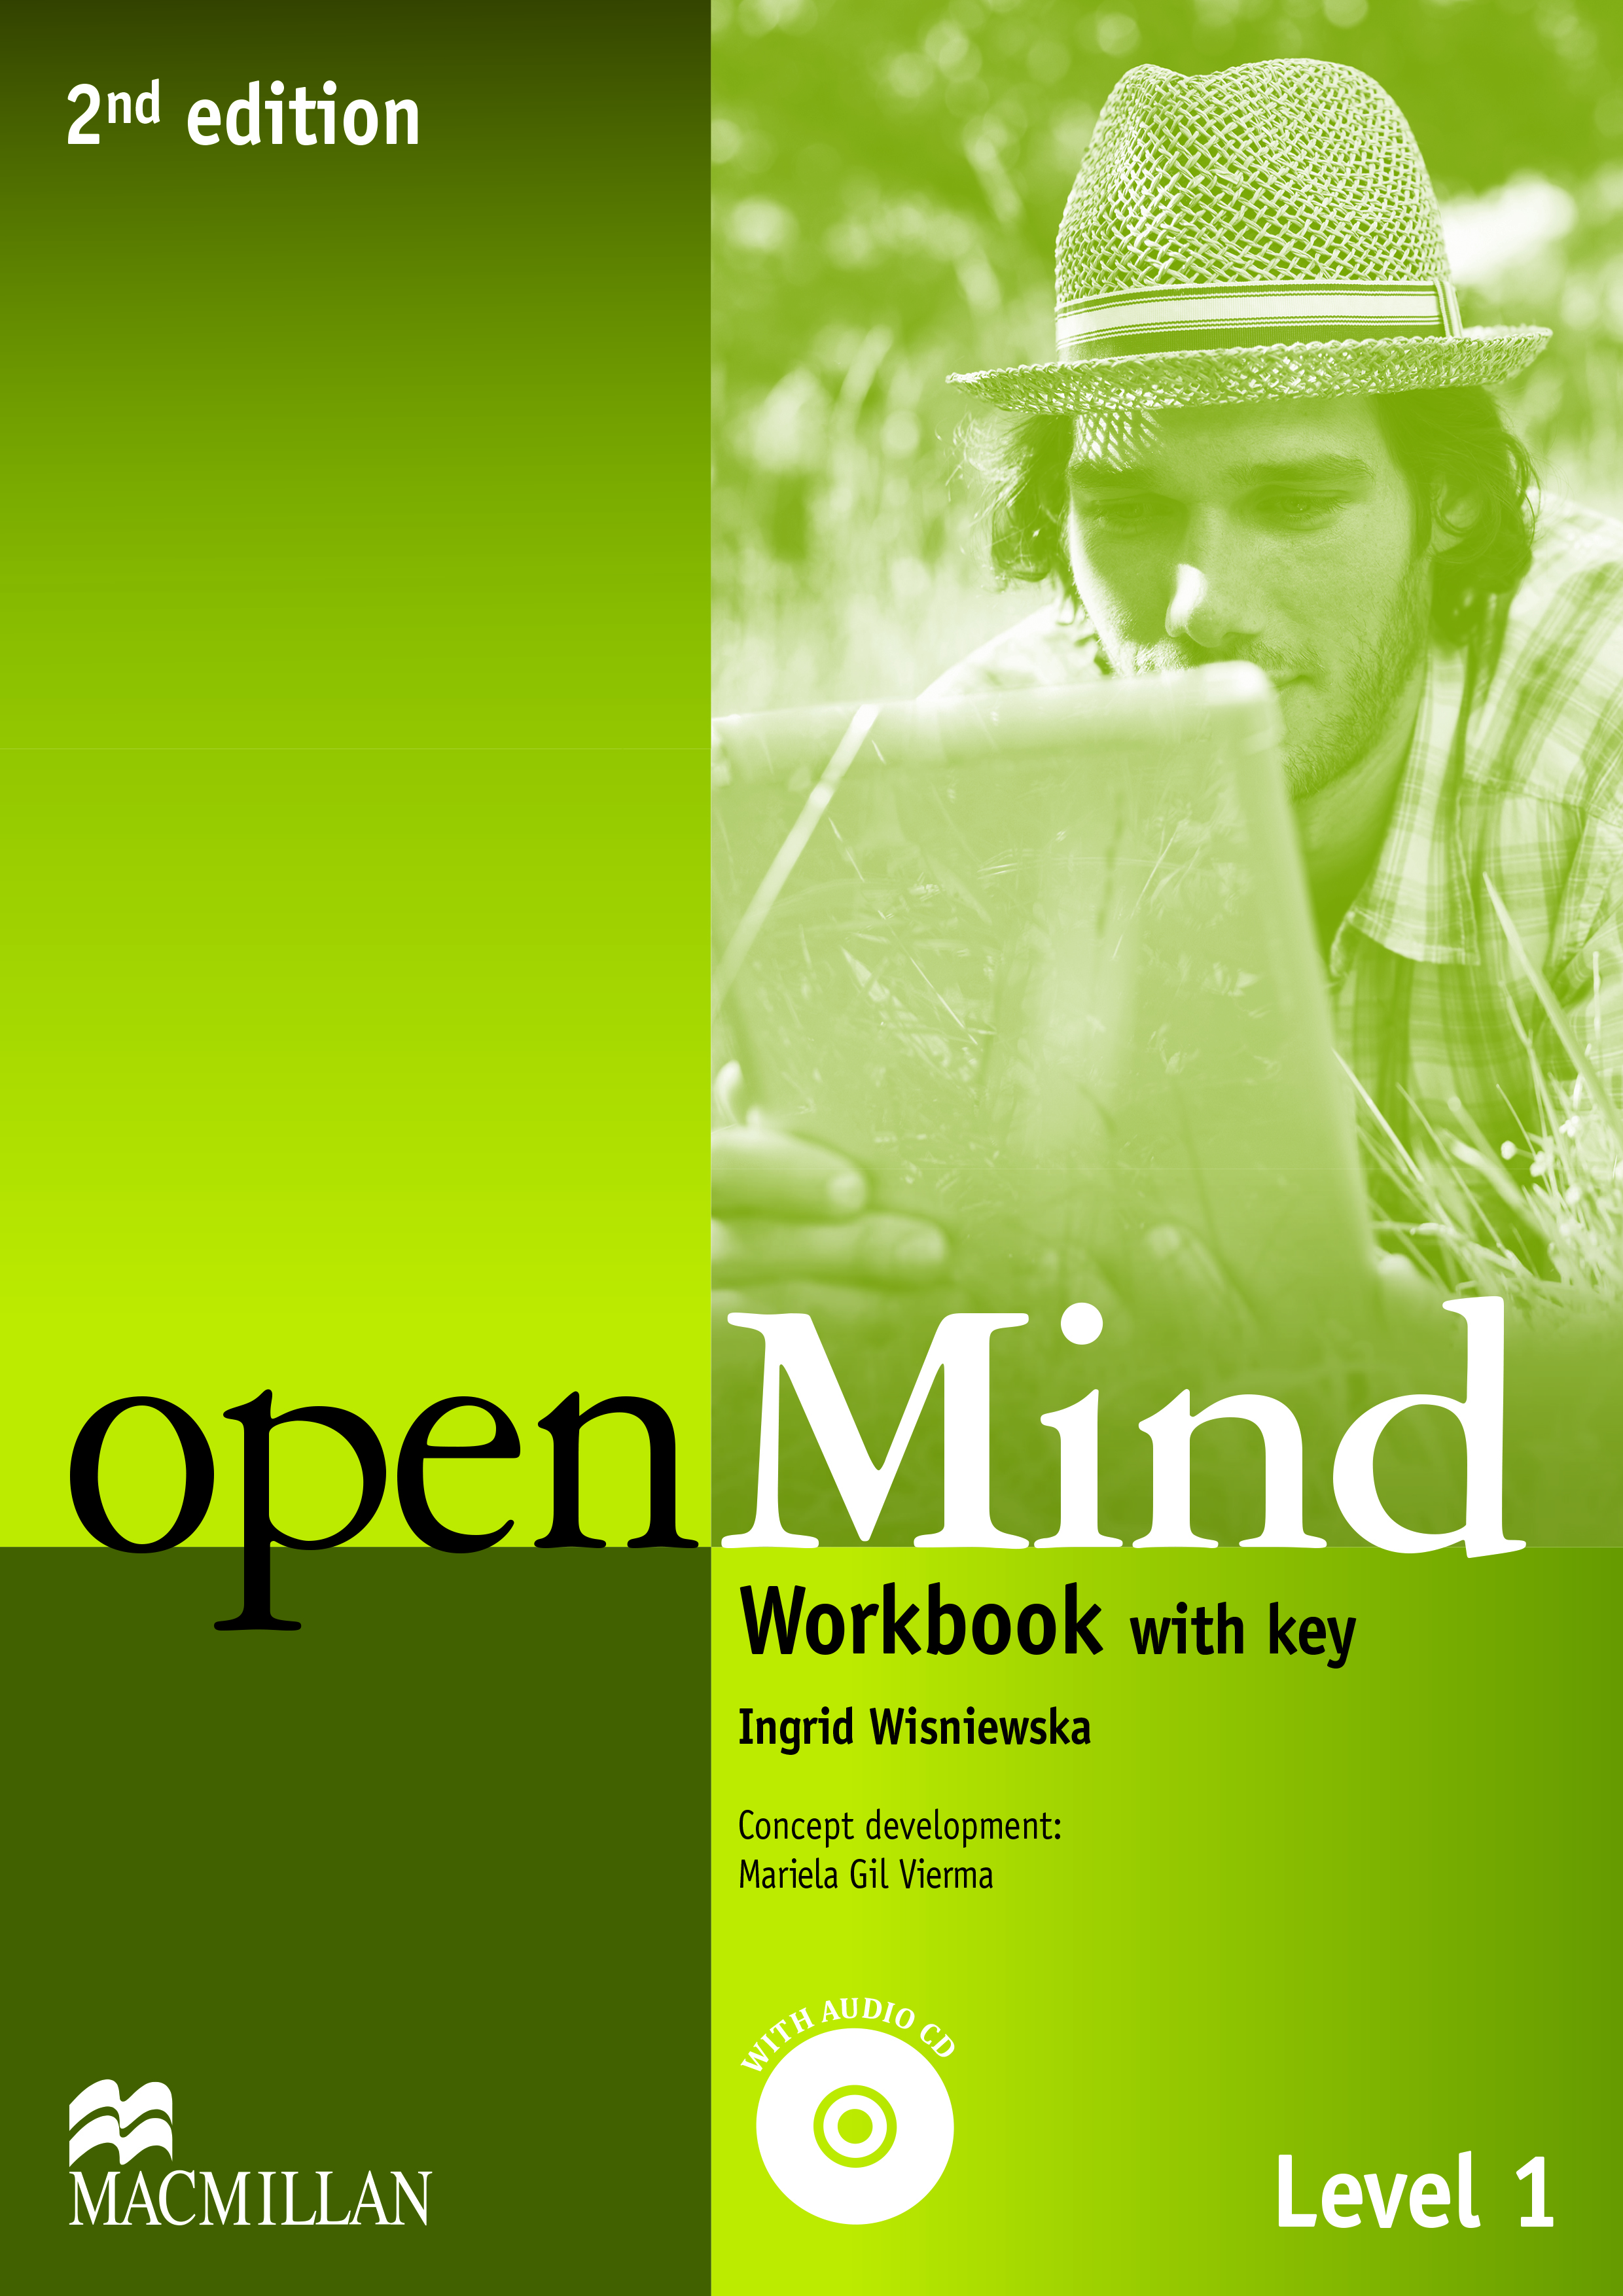 openMind 2nd Edition Level 1 Workbook with CD and Key